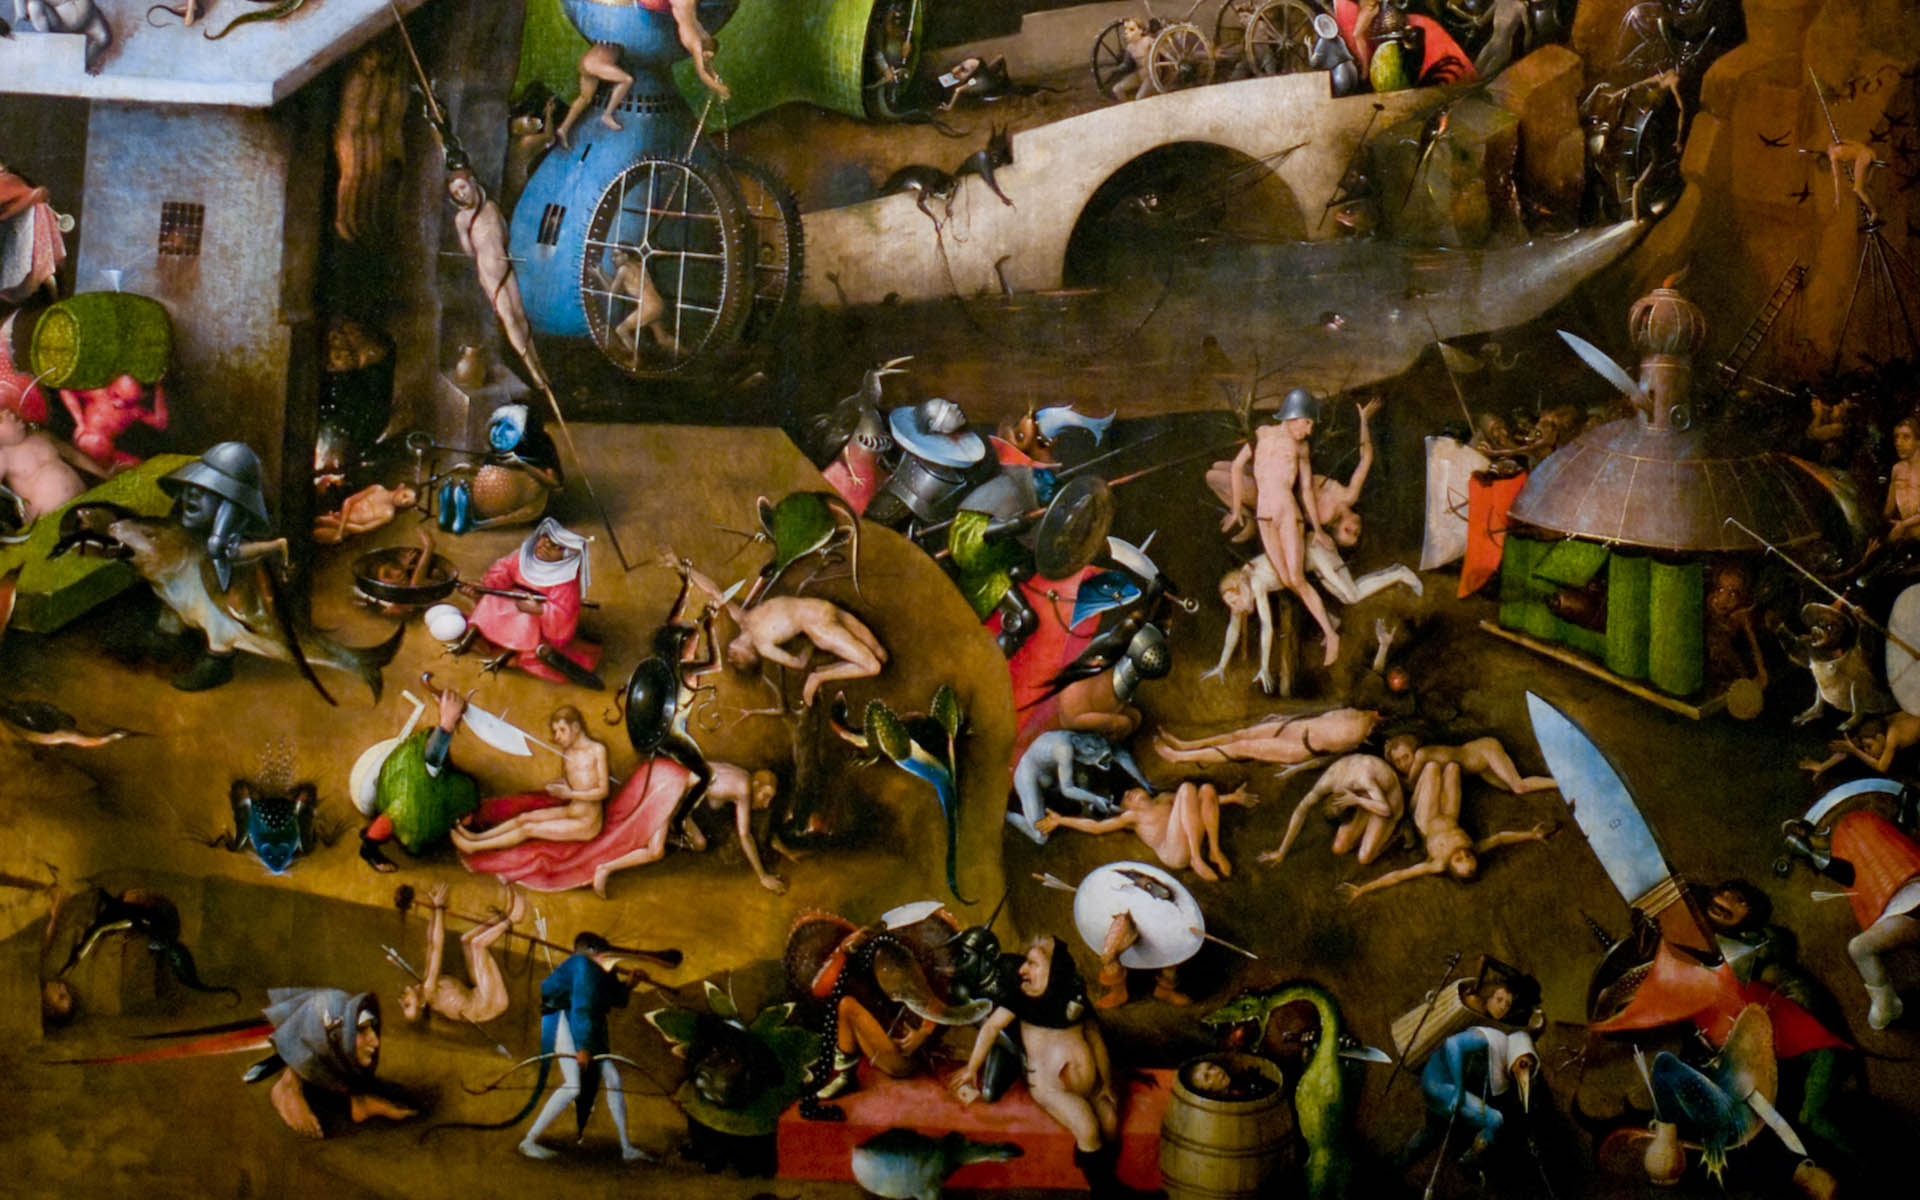 http://weartlovers.wehomeowners.com/wp-content/uploads/2016/07/hieronymus_bosch10.jpg